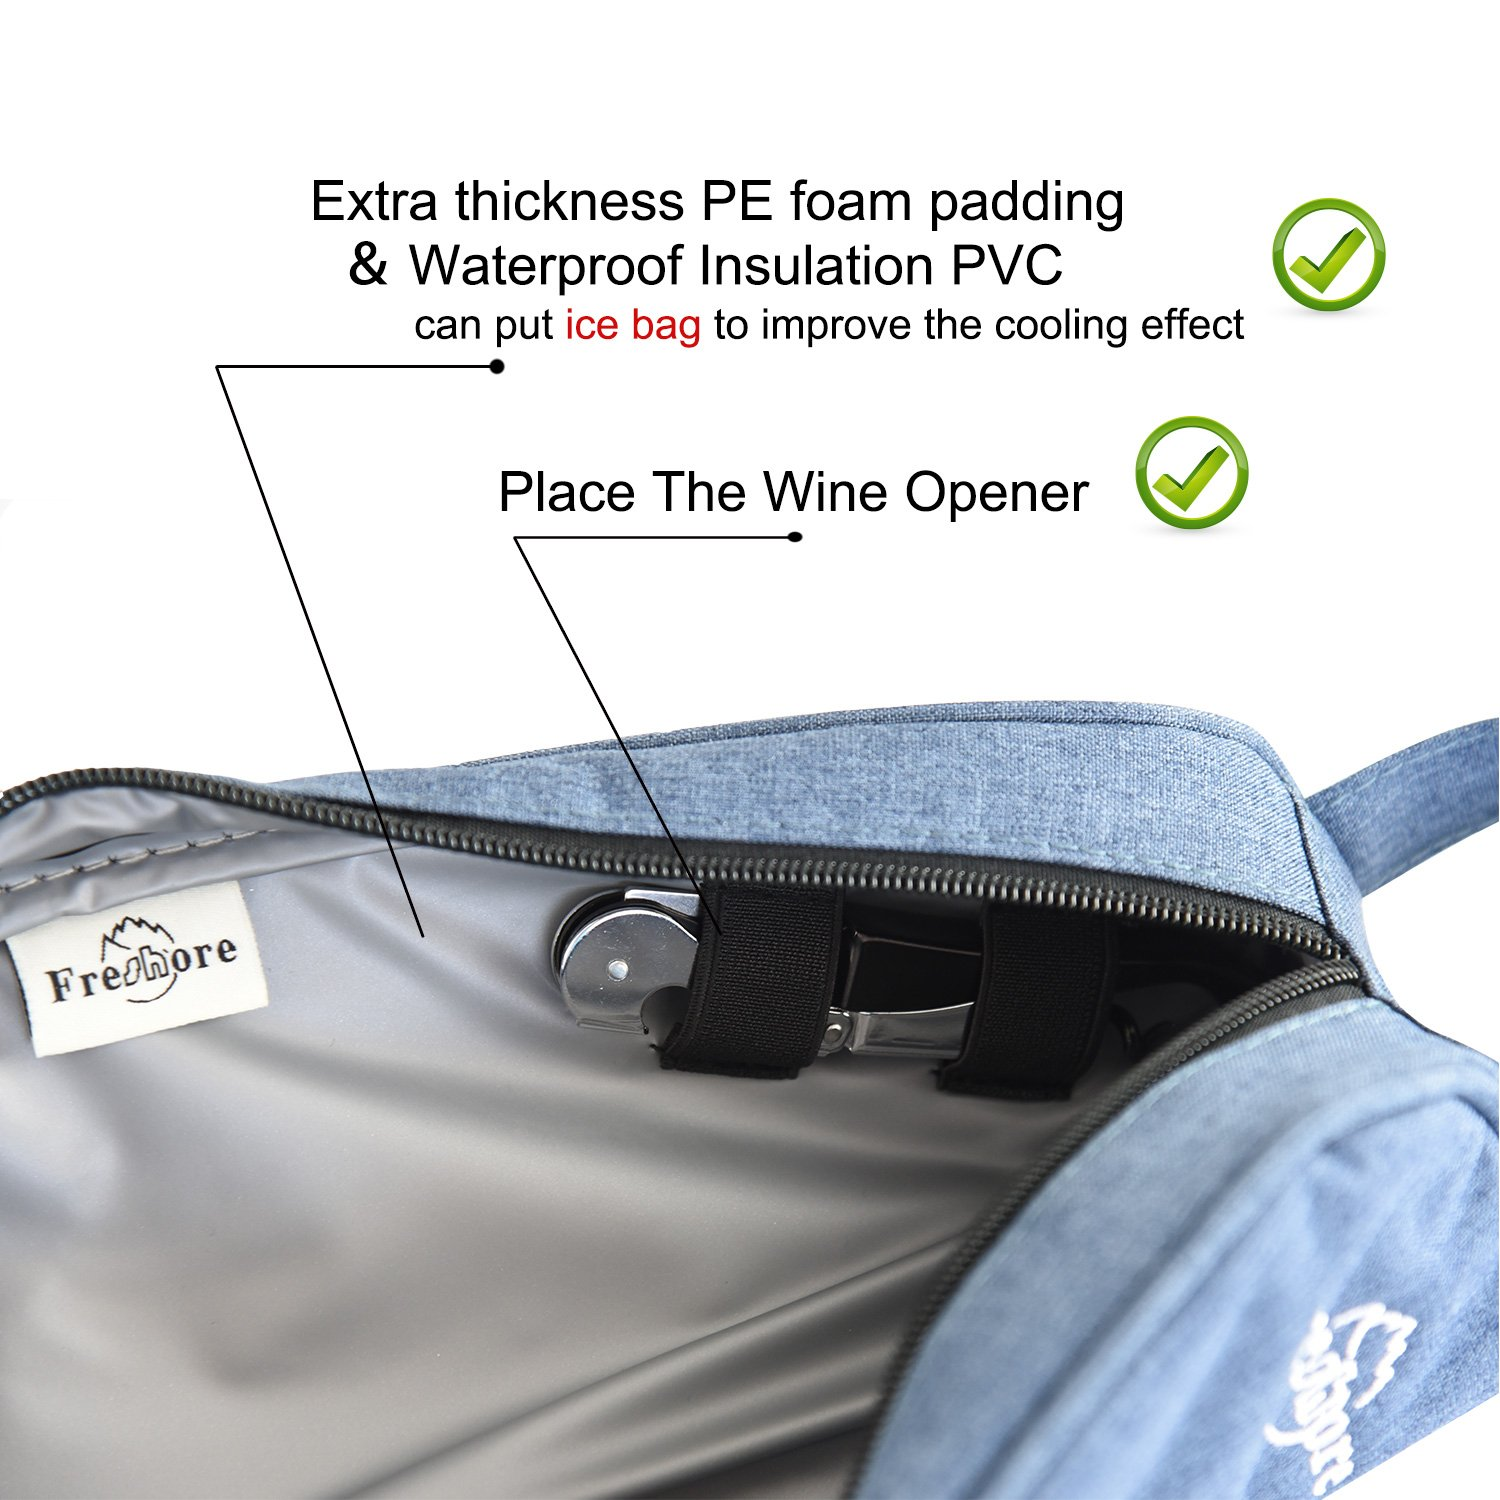 Freshore Insulated Single Wine Tote Bag Carriers For Cooler Restaurant As Gift - Firmly Store Corkscrew (Gray Blue) by Freshore (Image #4)